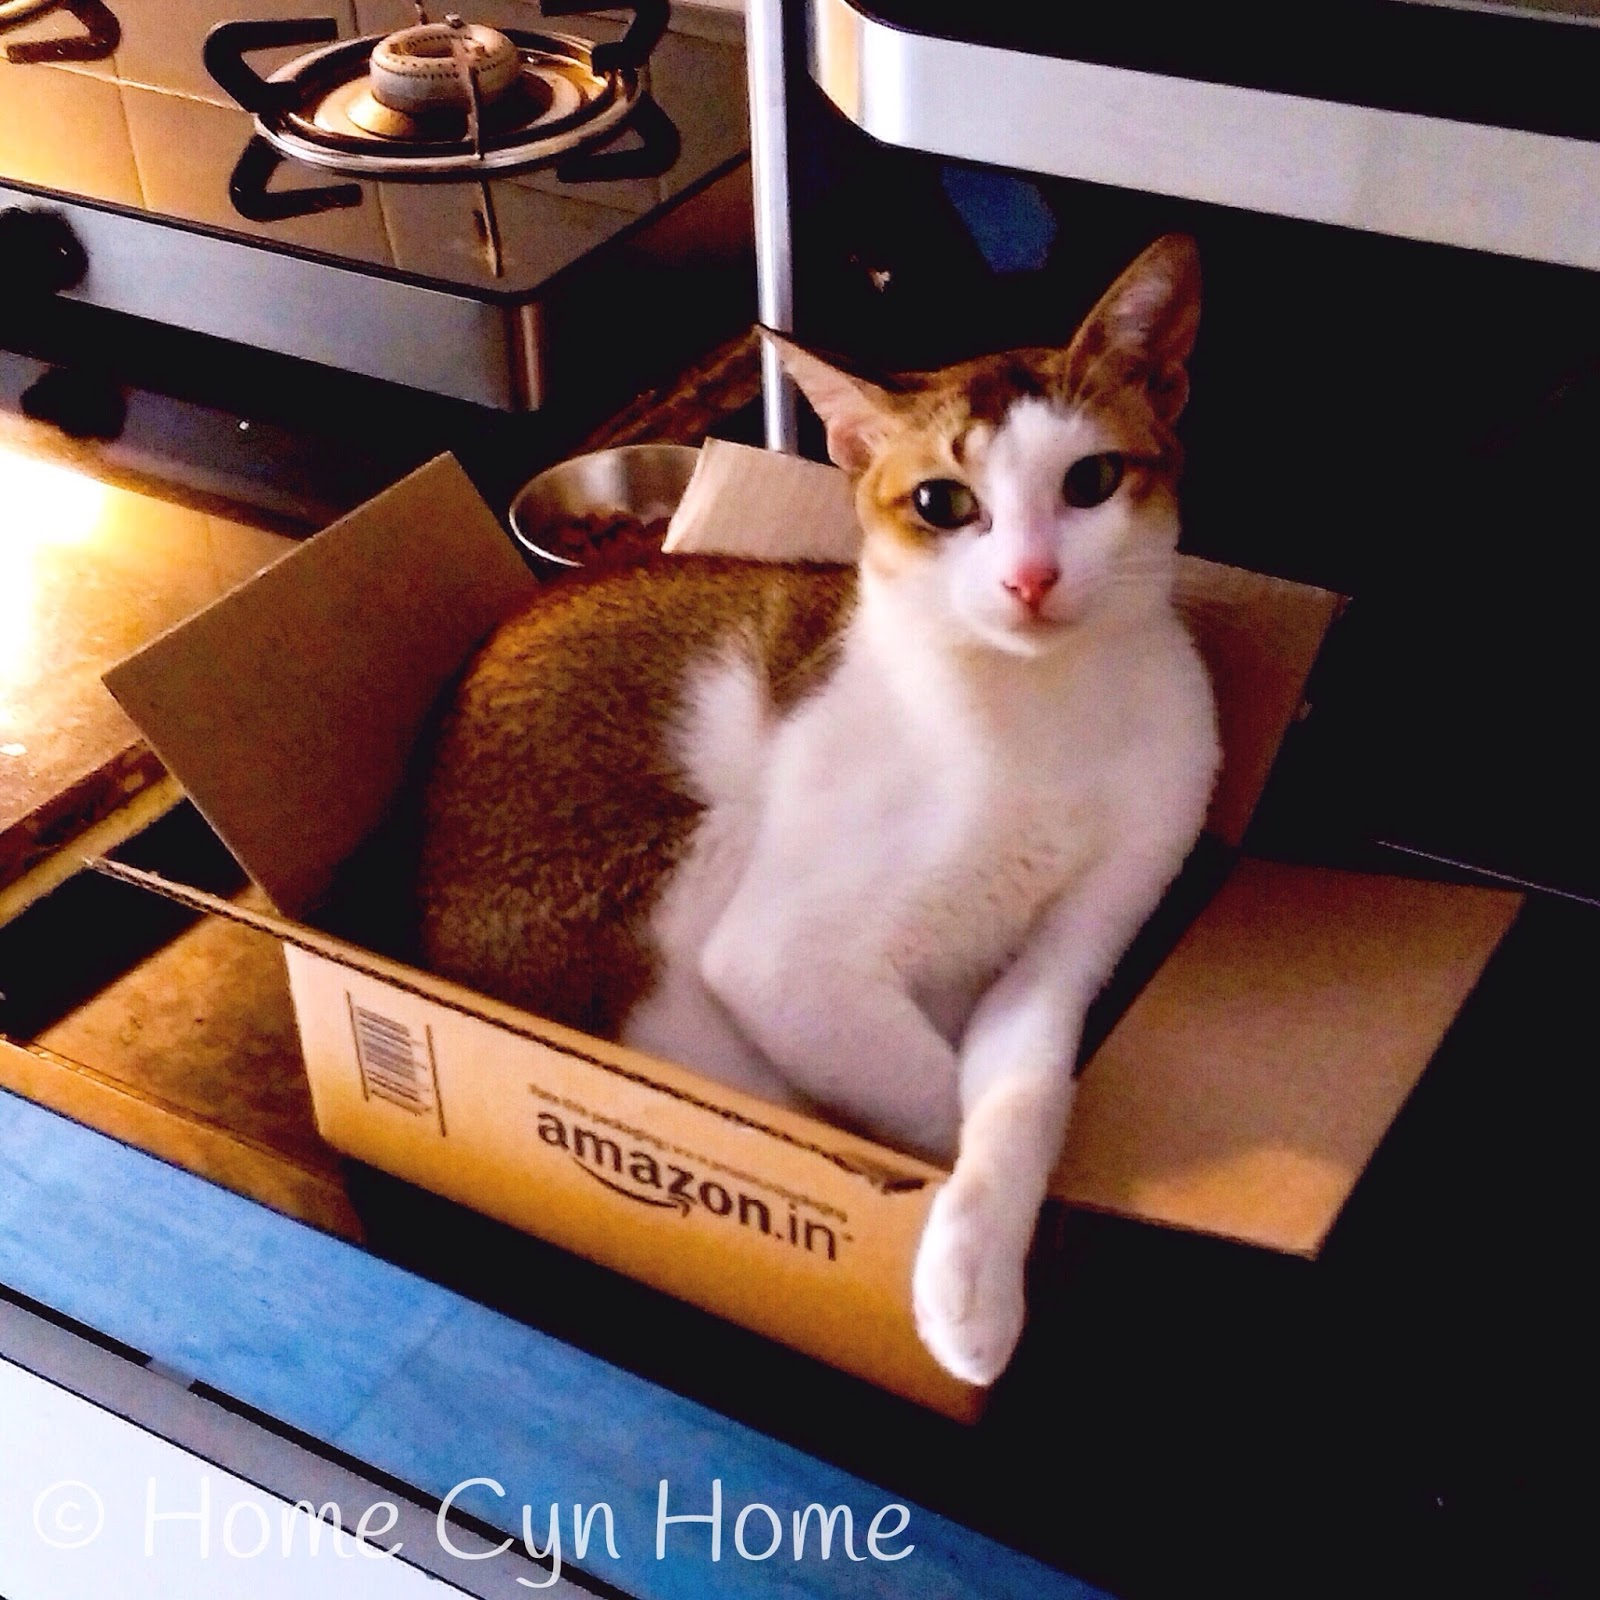 Cats have a particular attraction for boxes, size no bar